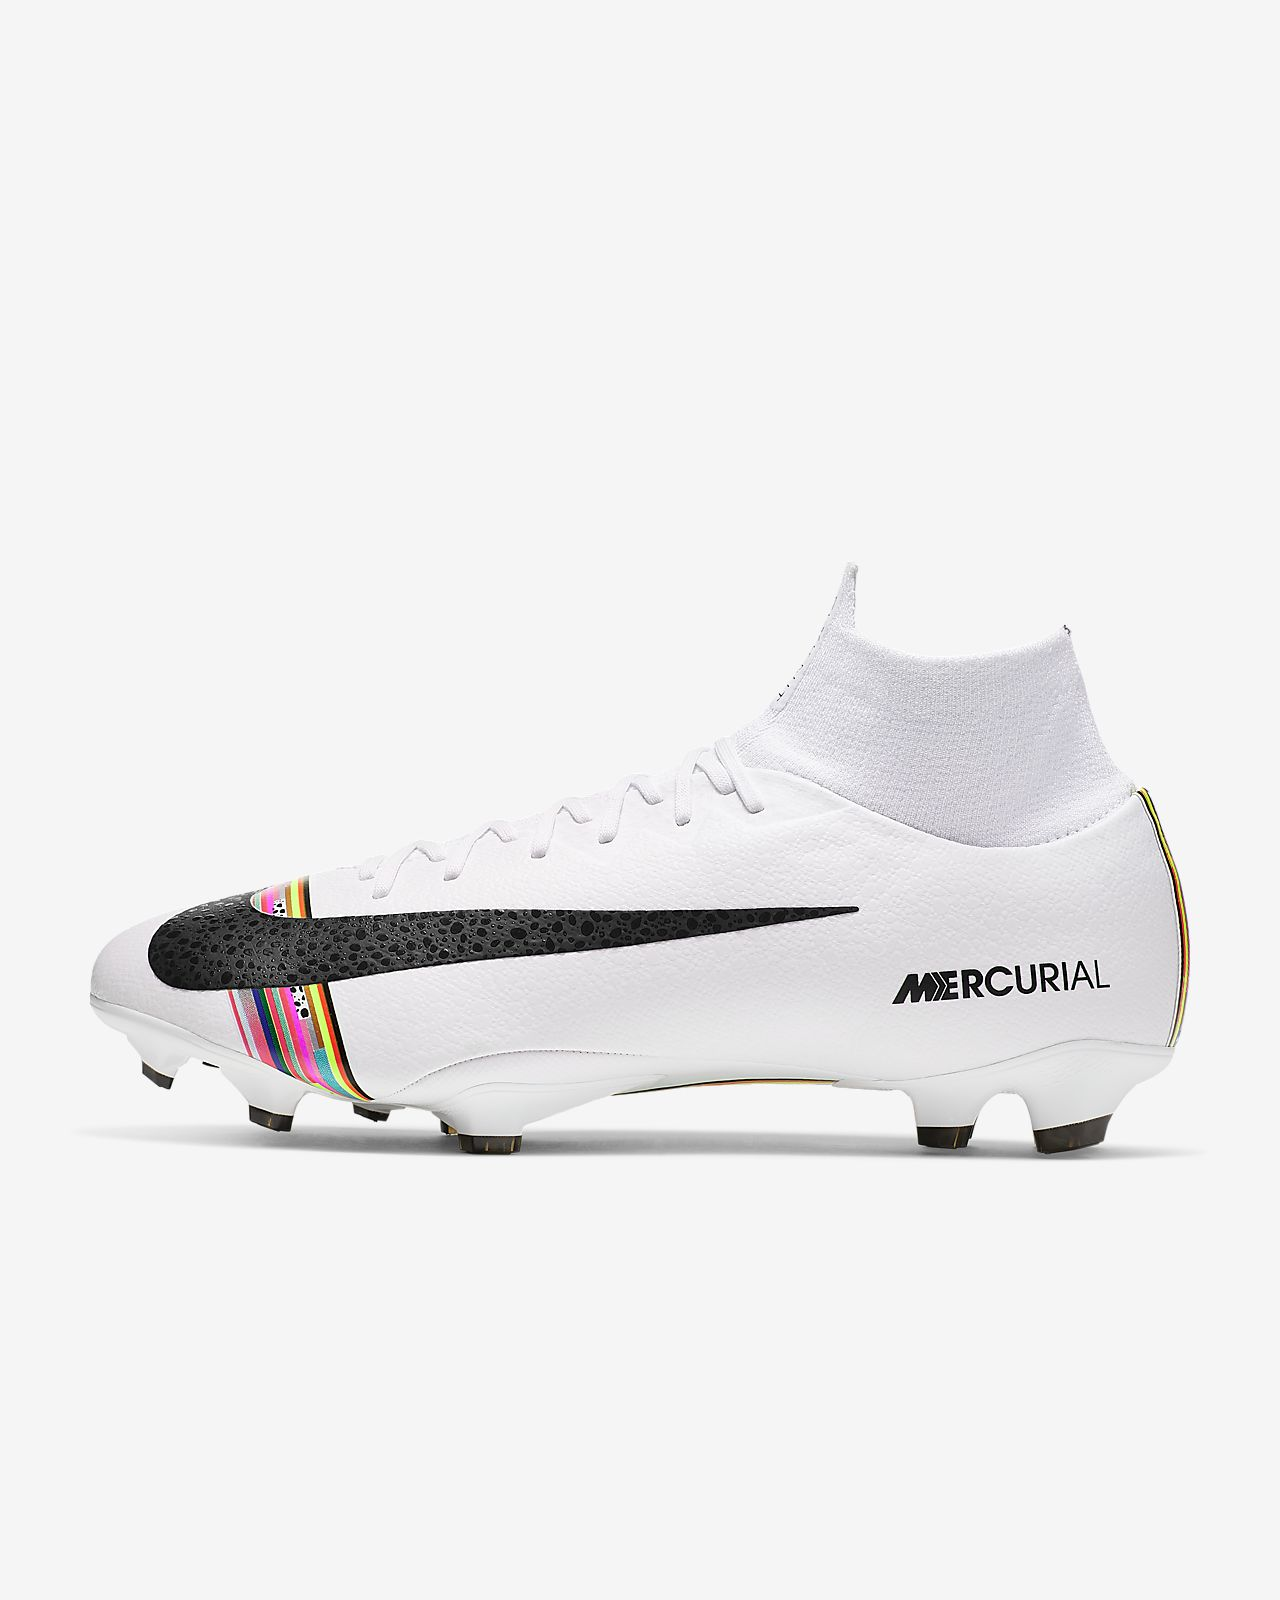 Nike Superfly 6 Pro LVL UP FG Firm-Ground Soccer Cleat ...